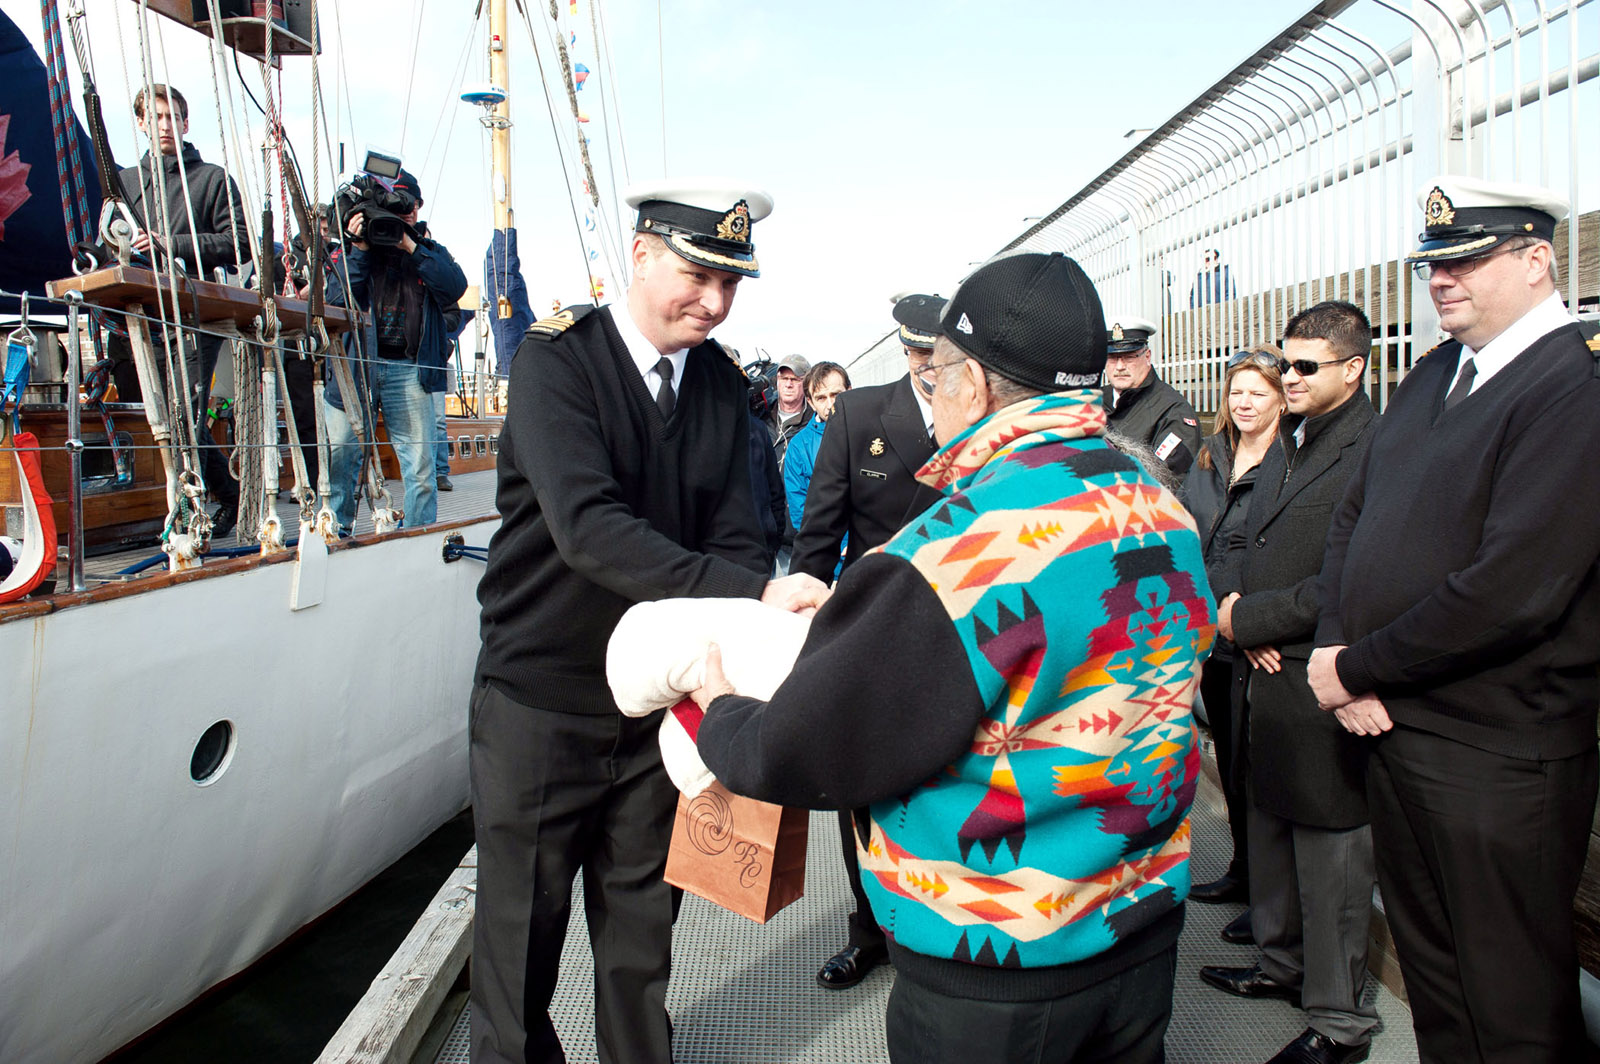 Lieutenant-Commander Michael Wills, commanding officer of HMCS Oriole, thanks Elder Elmer George of the Esquimalt and Songhees Nations for performing a blessing ceremony prior to leaving on a 10,000 nautical mile voyage.